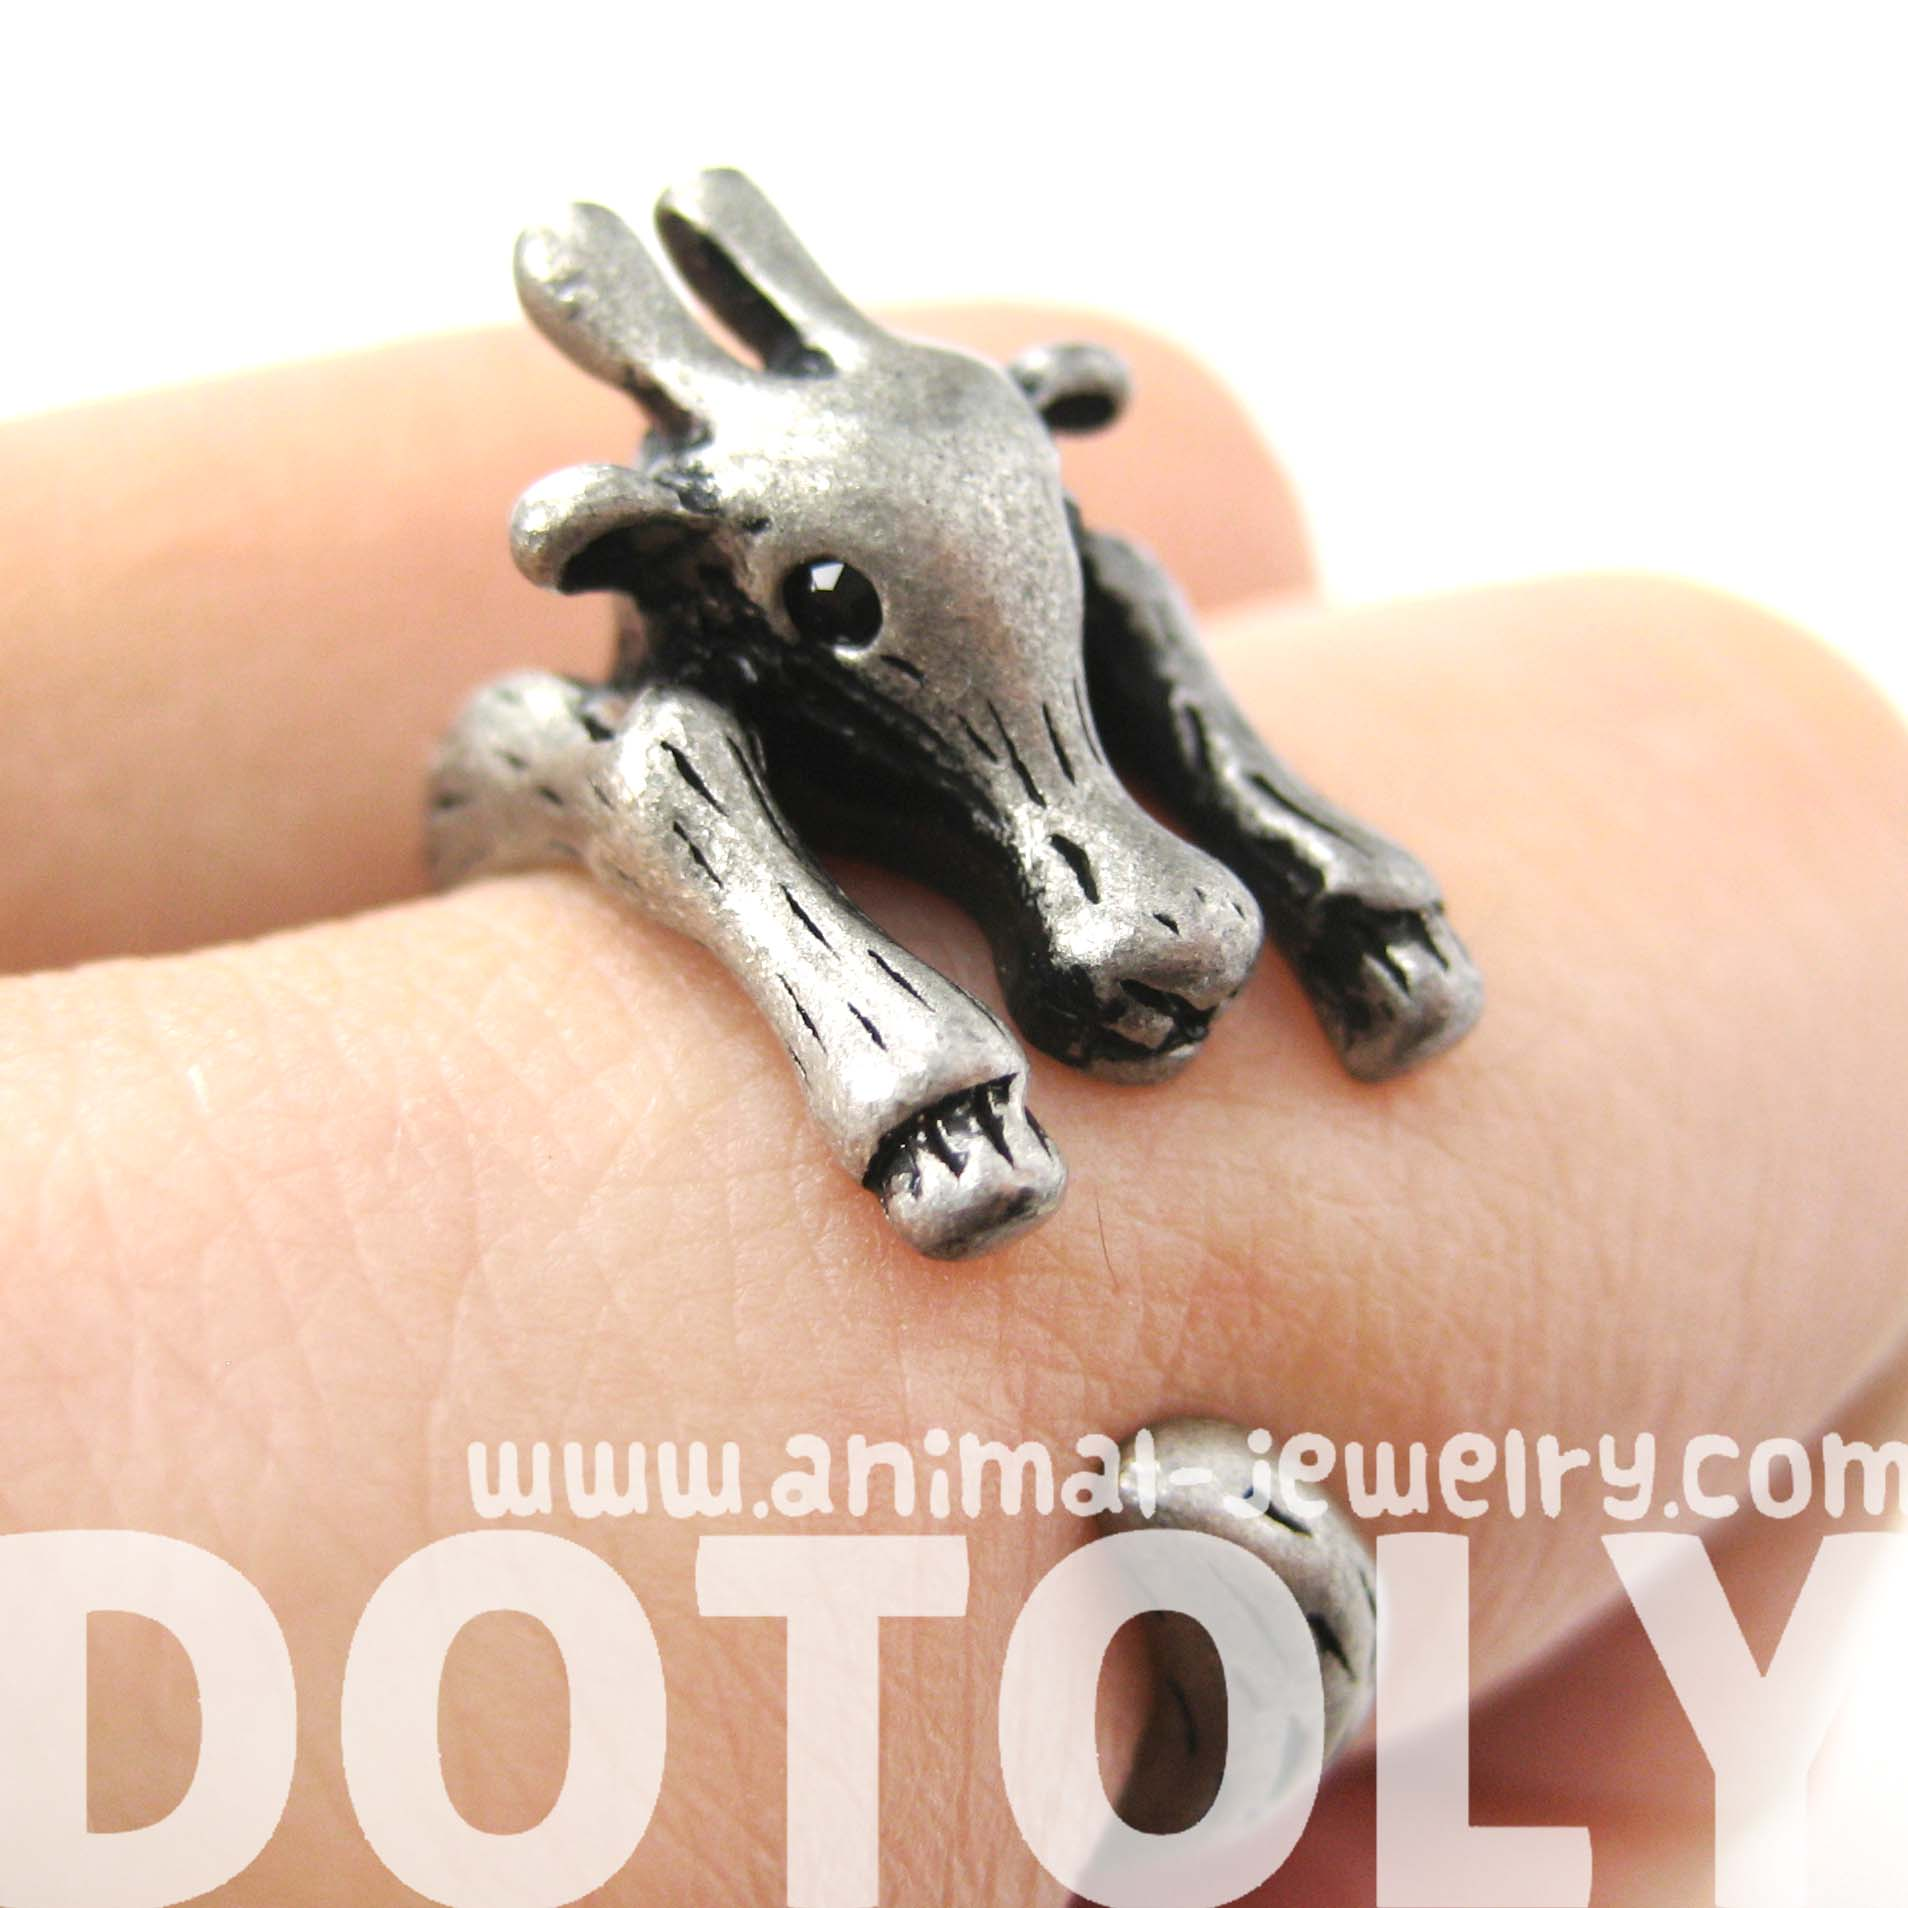 large-giraffe-animal-wrap-around-ring-in-silver-sizes-4-to-9-available